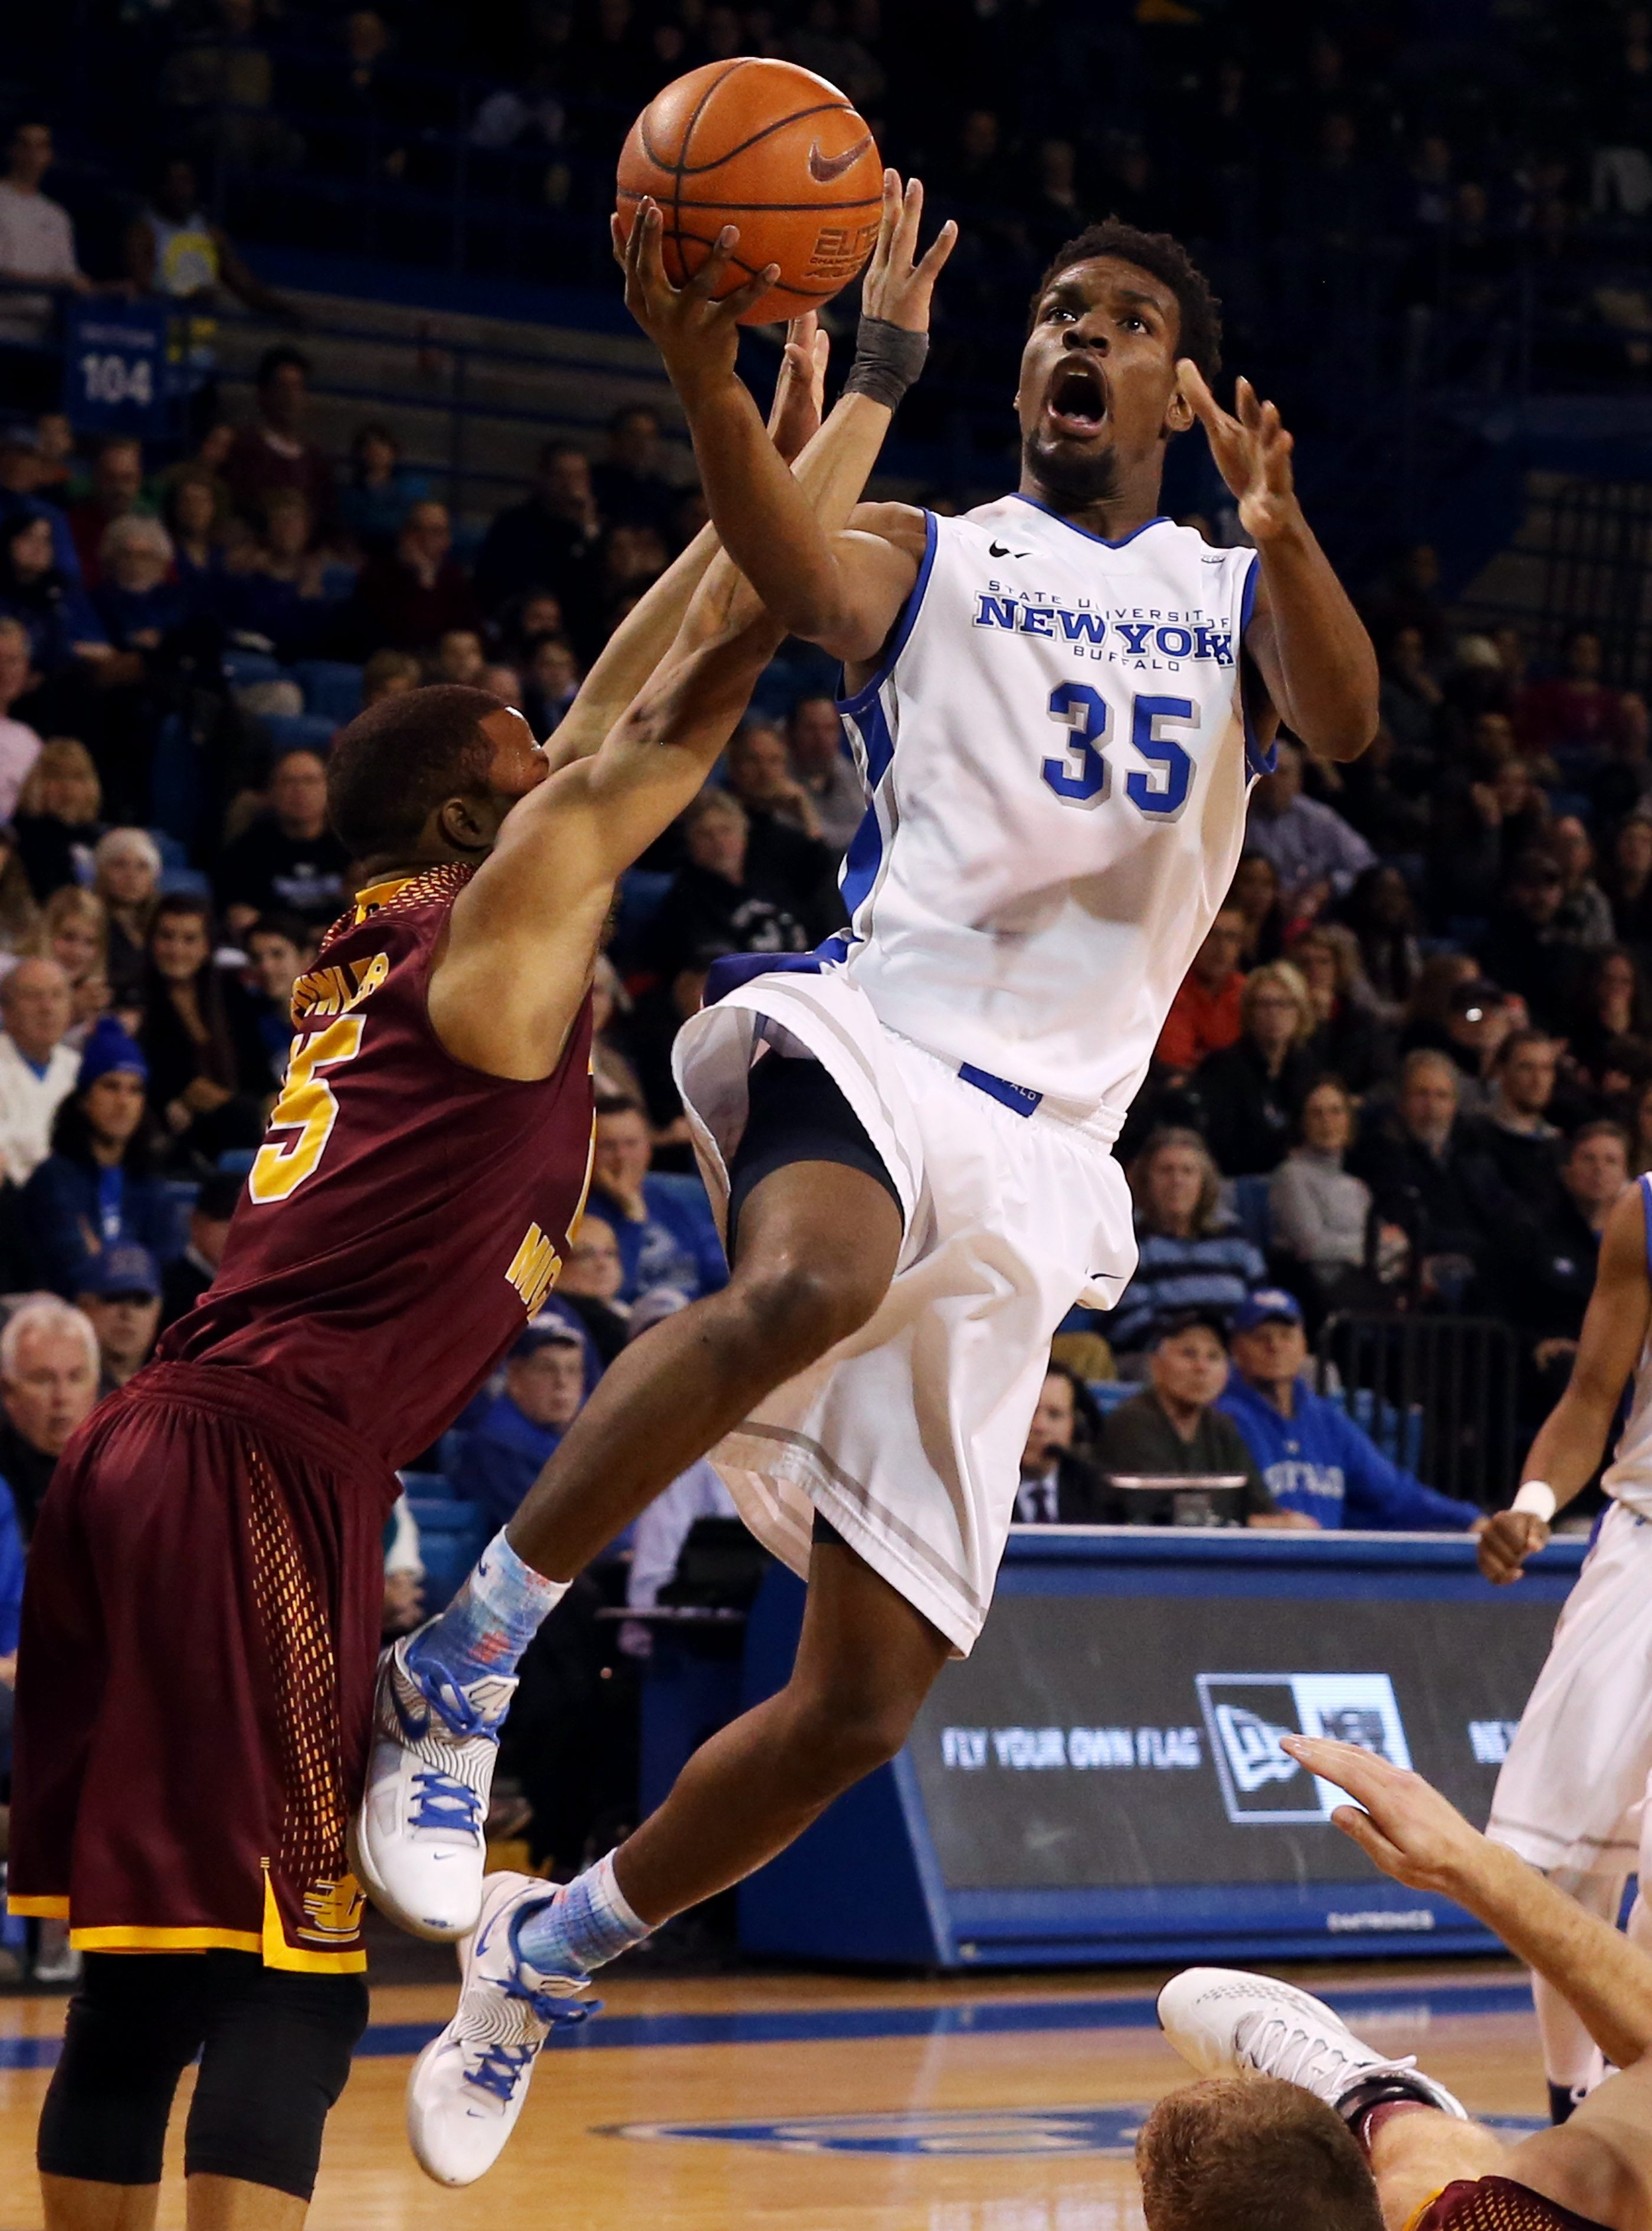 UB forward Xavier Ford will need to score some points against Central Michigan on Saturday.